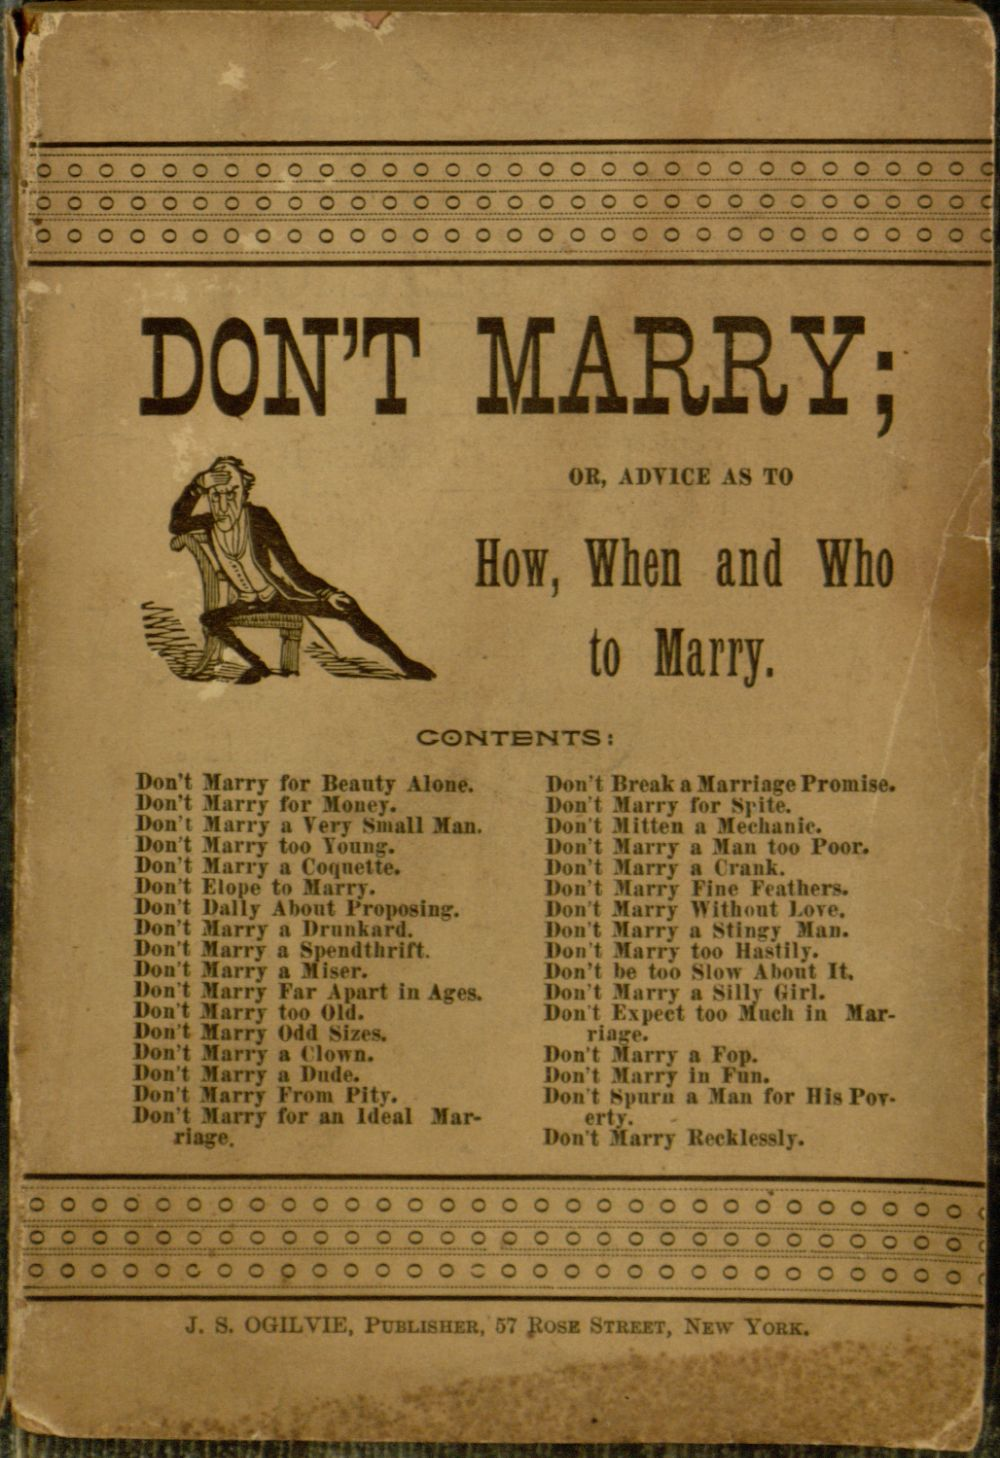 1891 Advice on How and Why (Not) to Marry